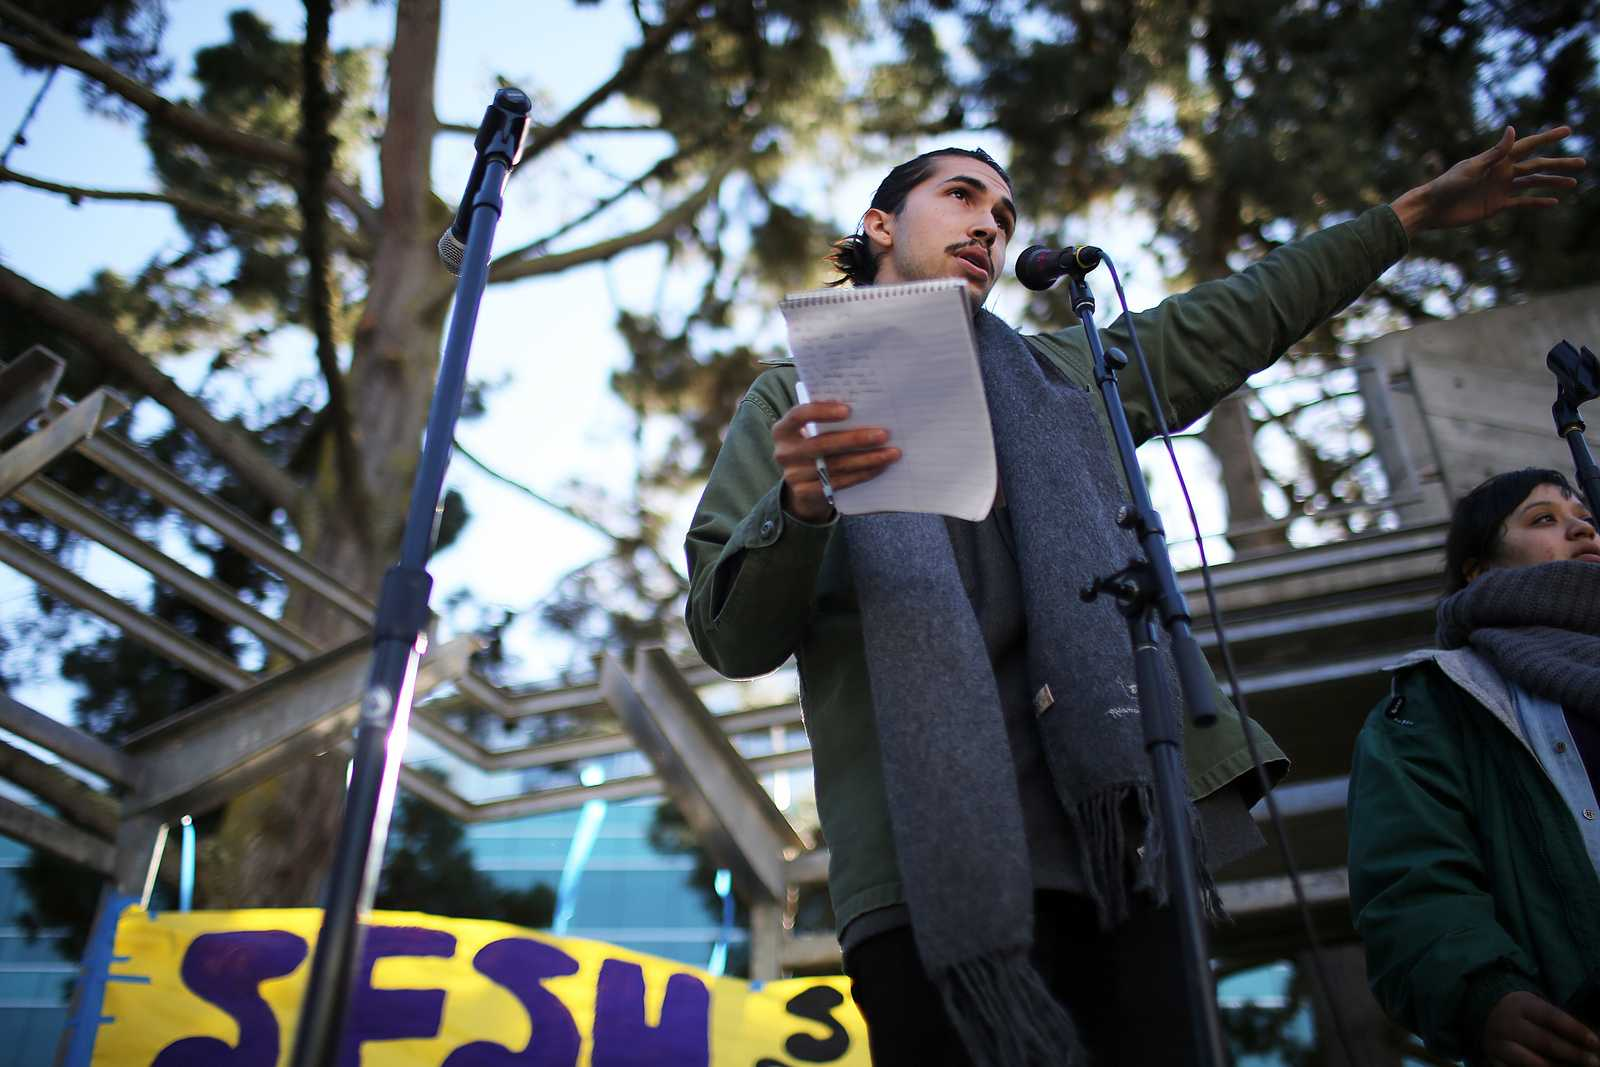 Michael Sanchez speaks to students about Tasers in Malcolm X Plaza during a rally Dec. 5. The rally was organized by a group of student organizations. Photo by John Ornelas / Xpress.